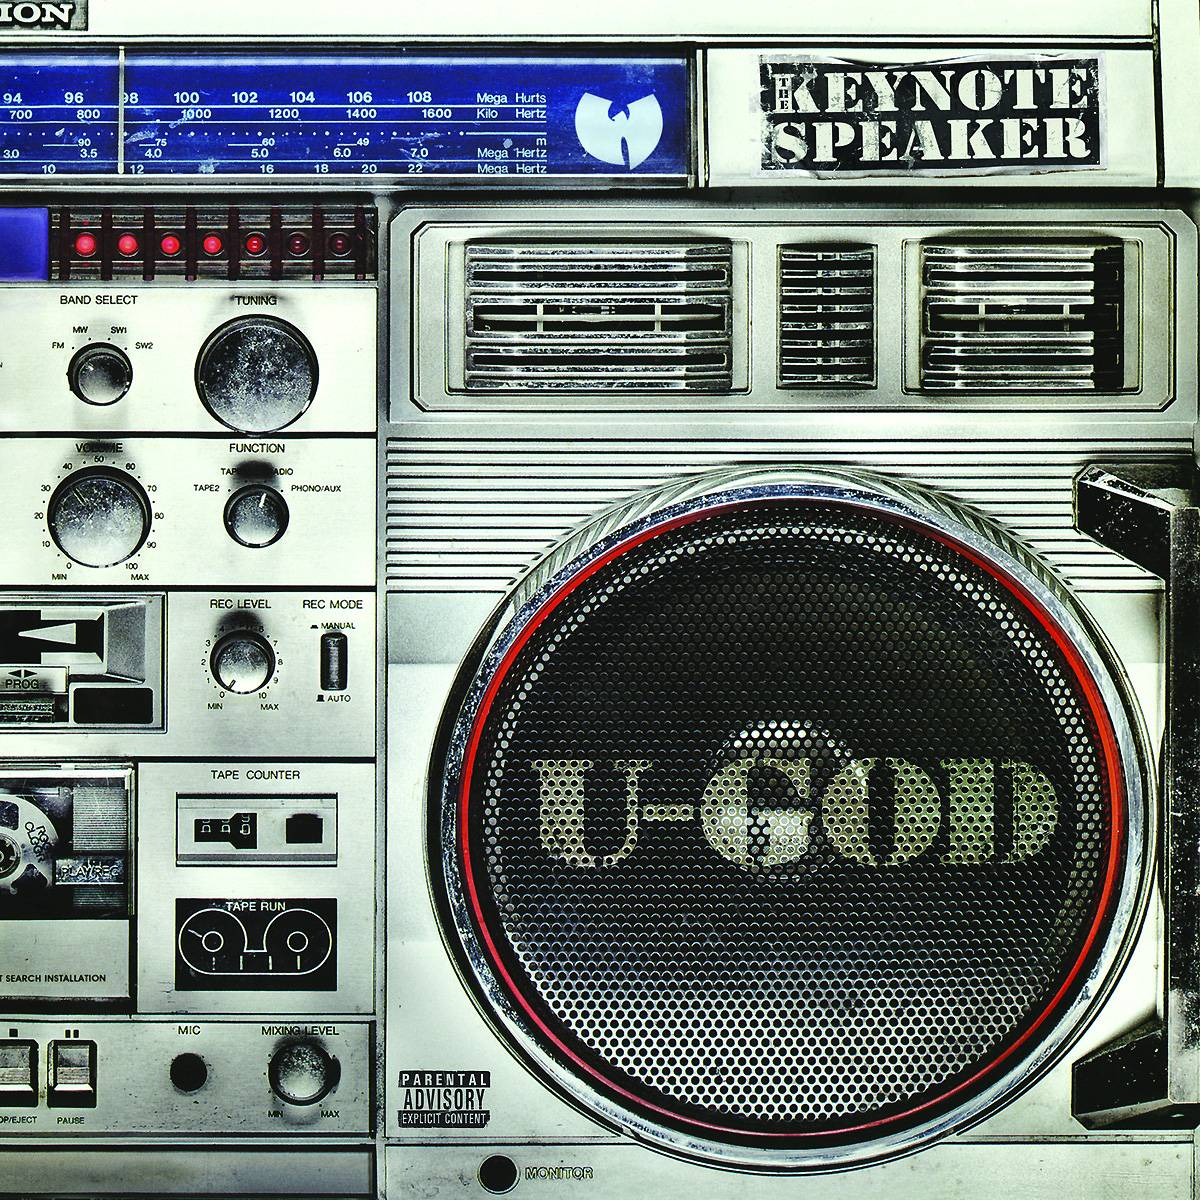 50. U-God - The Keynote Speaker (2013) - At times, U-God has been relegated to forgotten-man status amongst his Shaolin brethren. But if you are looking for the same focused, dynamic raps he exhibited on Raekwon?s ?Knuckleheadz,? this sluggish attempt doesn't do the man any favors. (Photo: Soul Temple)